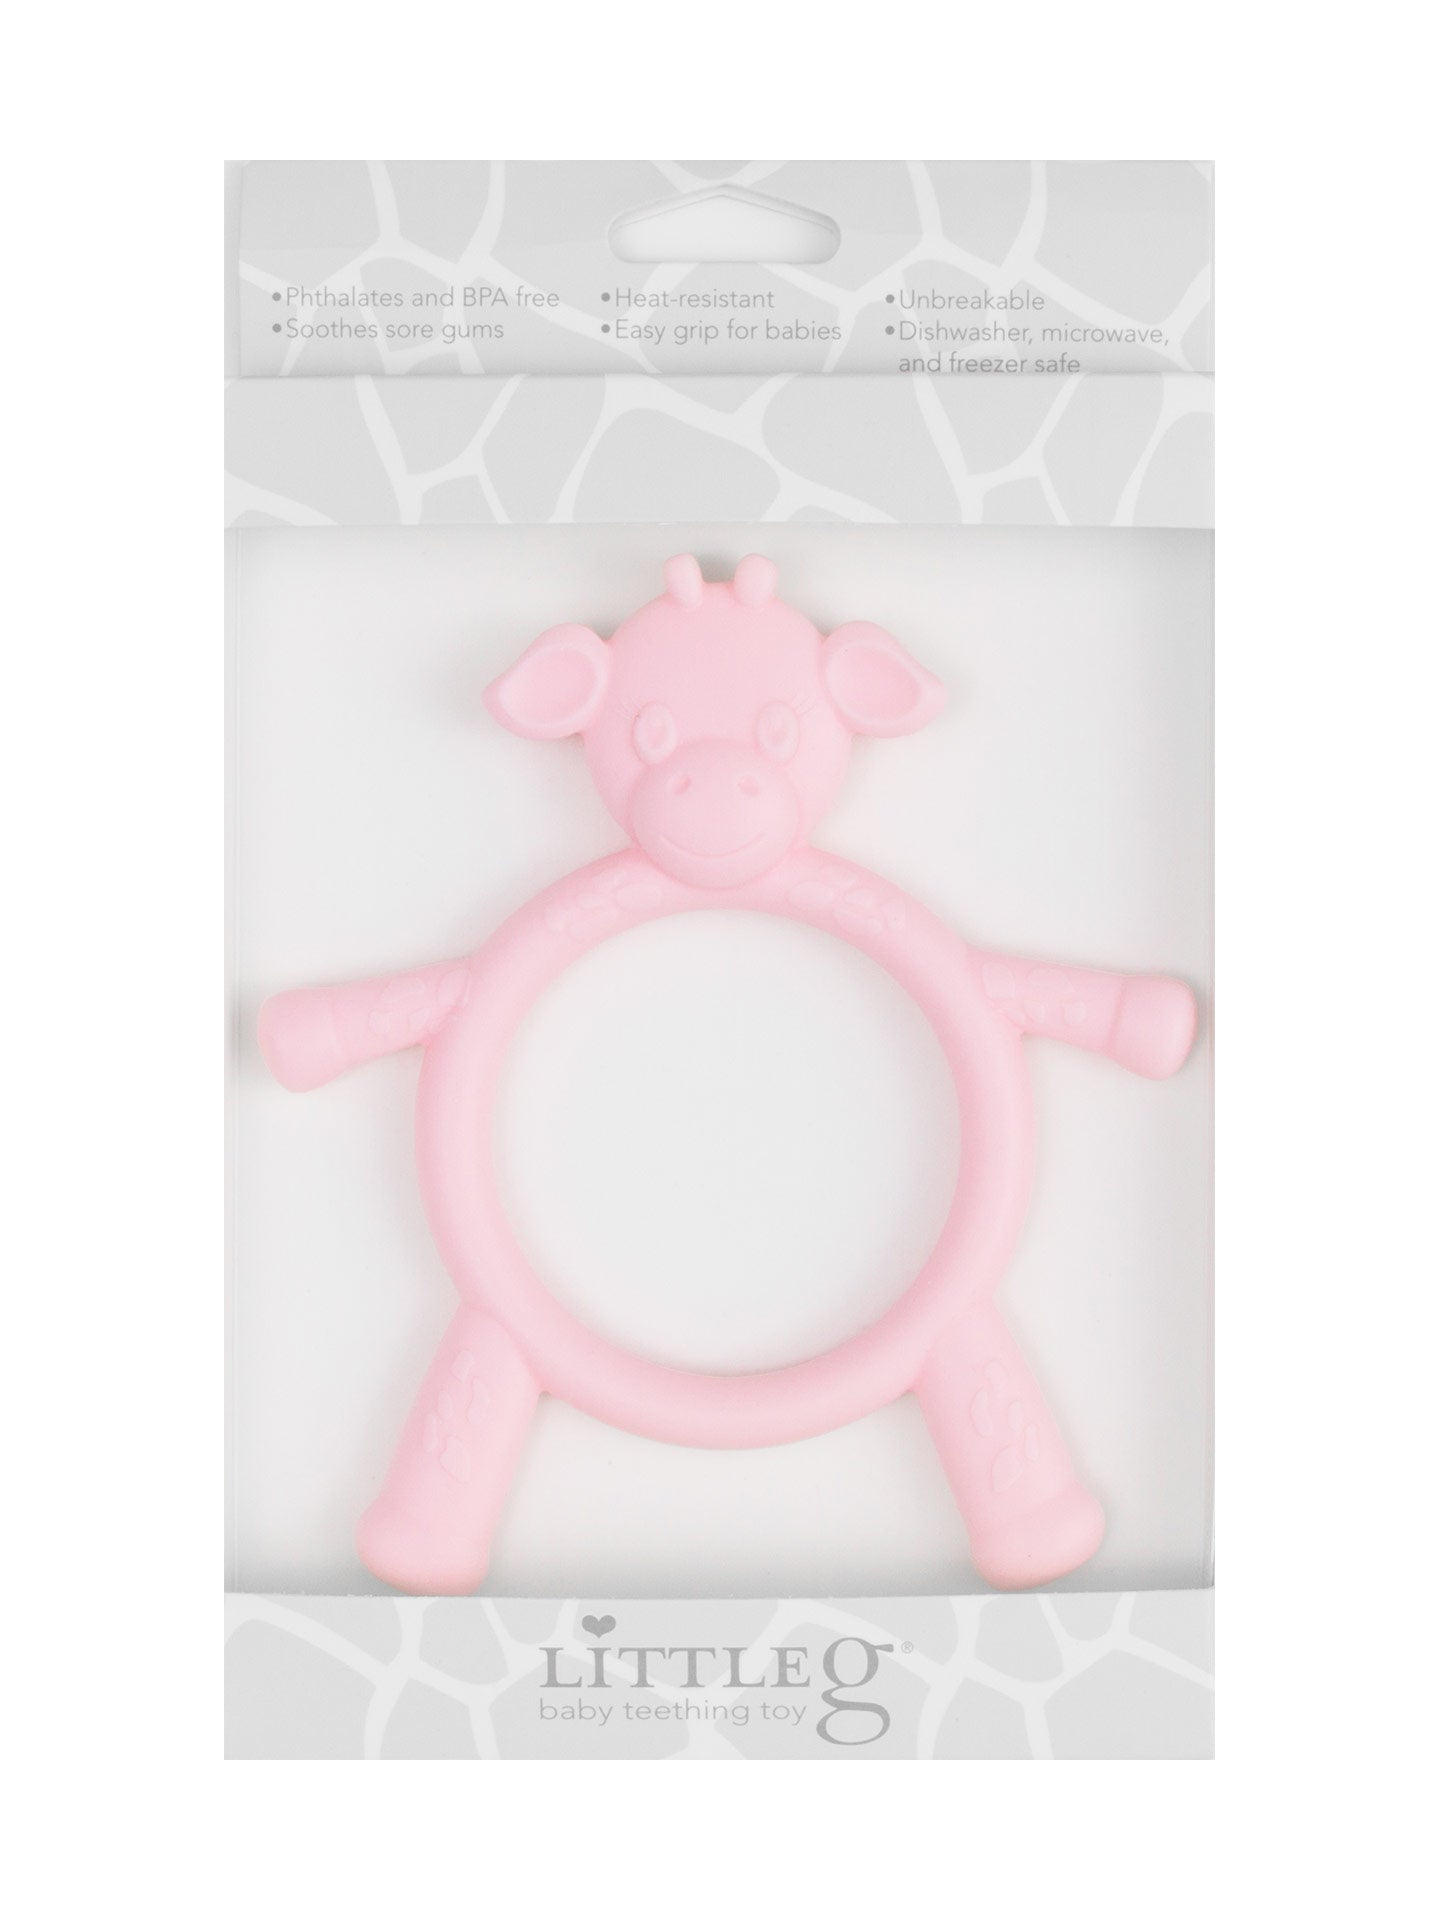 Little Giraffe | Little G™ Teething Toy | Pink